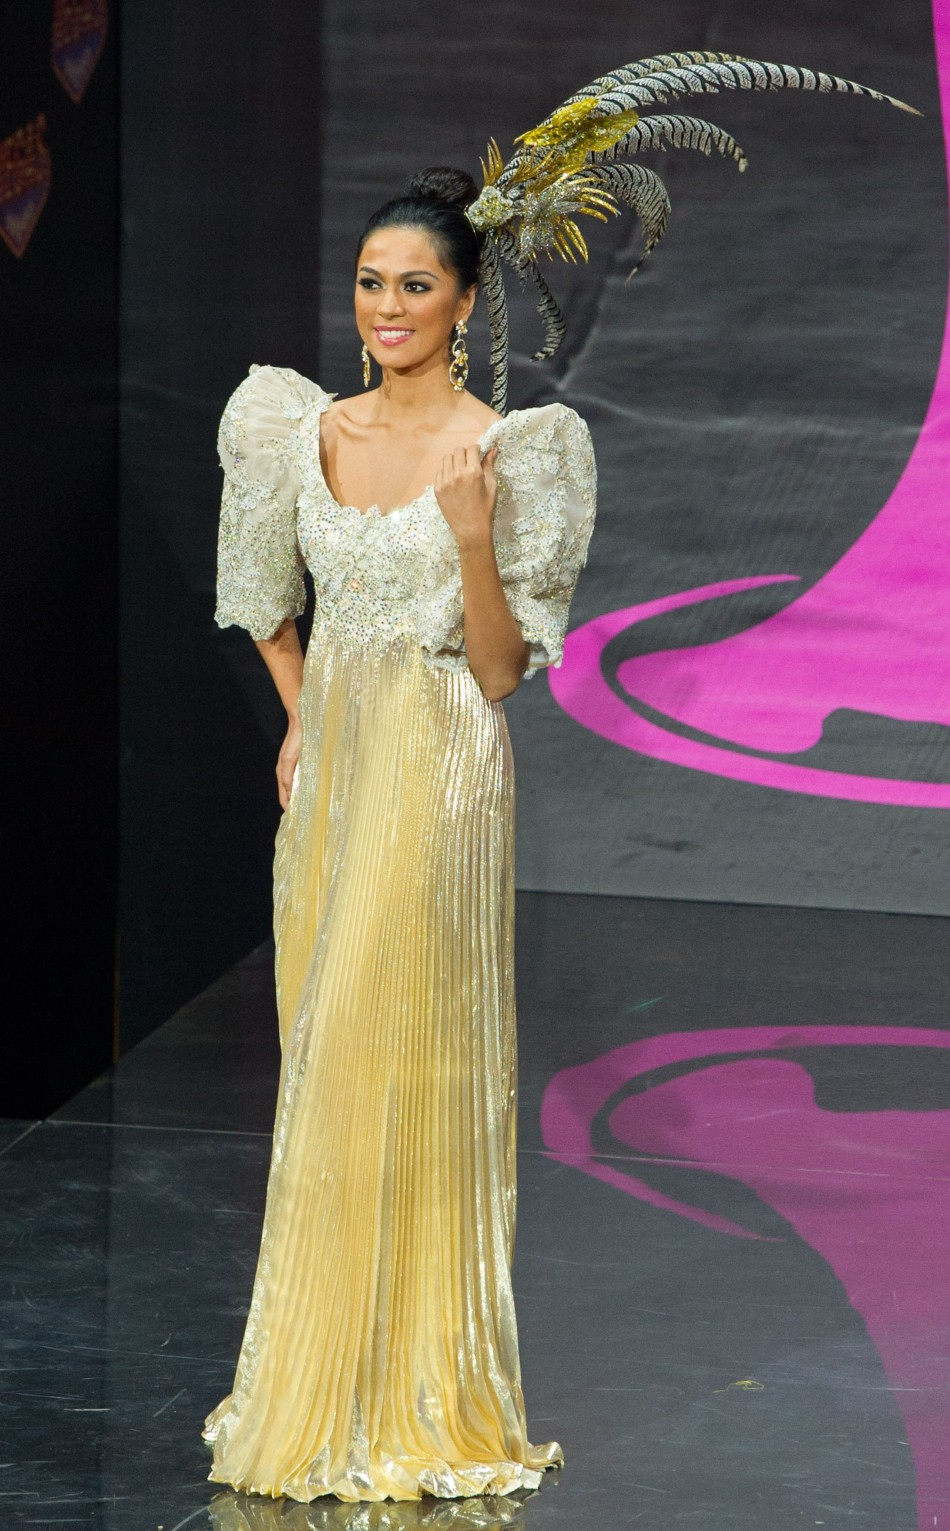 The traditional terno dress worn by Ariella Arida for national costume show. (Photo: Miss Universe L.P., LLLP)